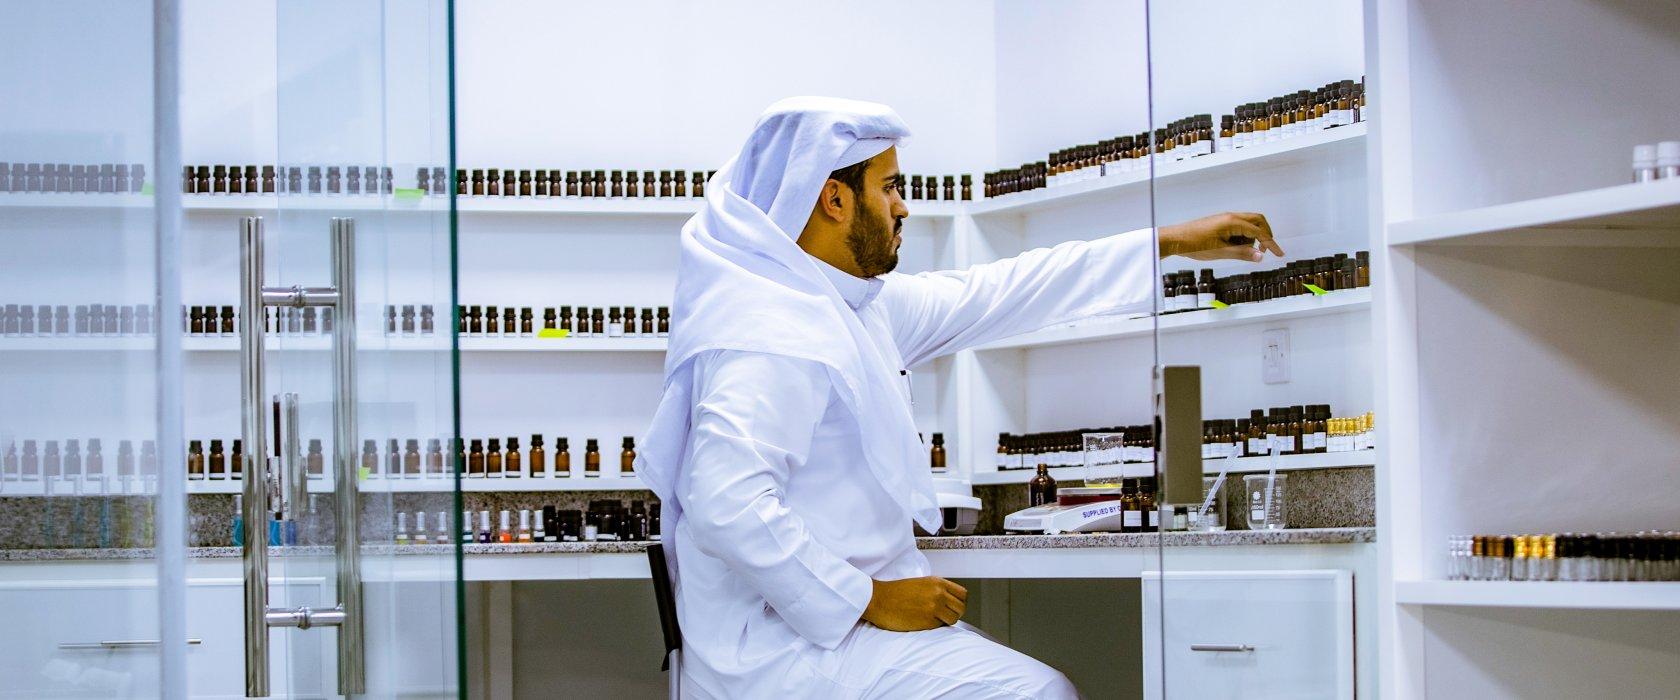 The scent of entrepreneurship | Qatar Foundation